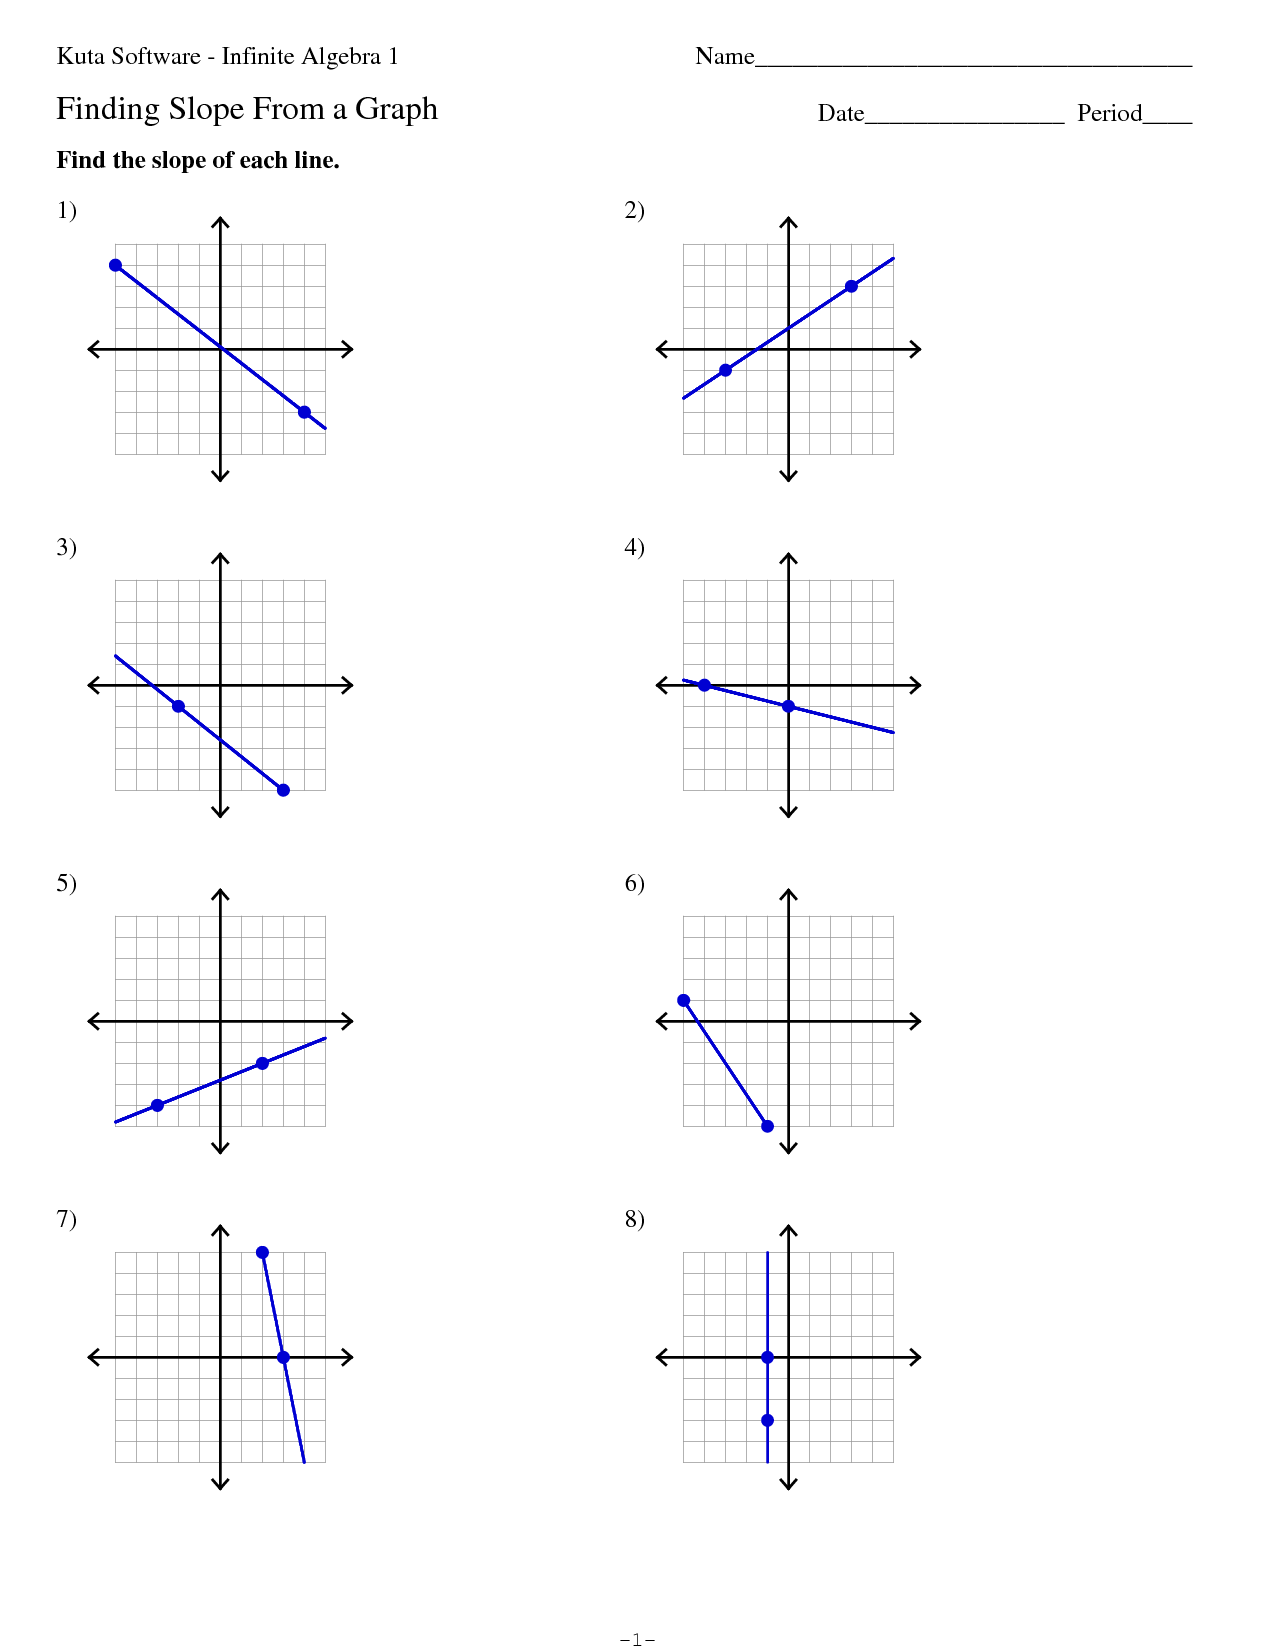 Finding The Slope Of A Line Worksheet Kuta